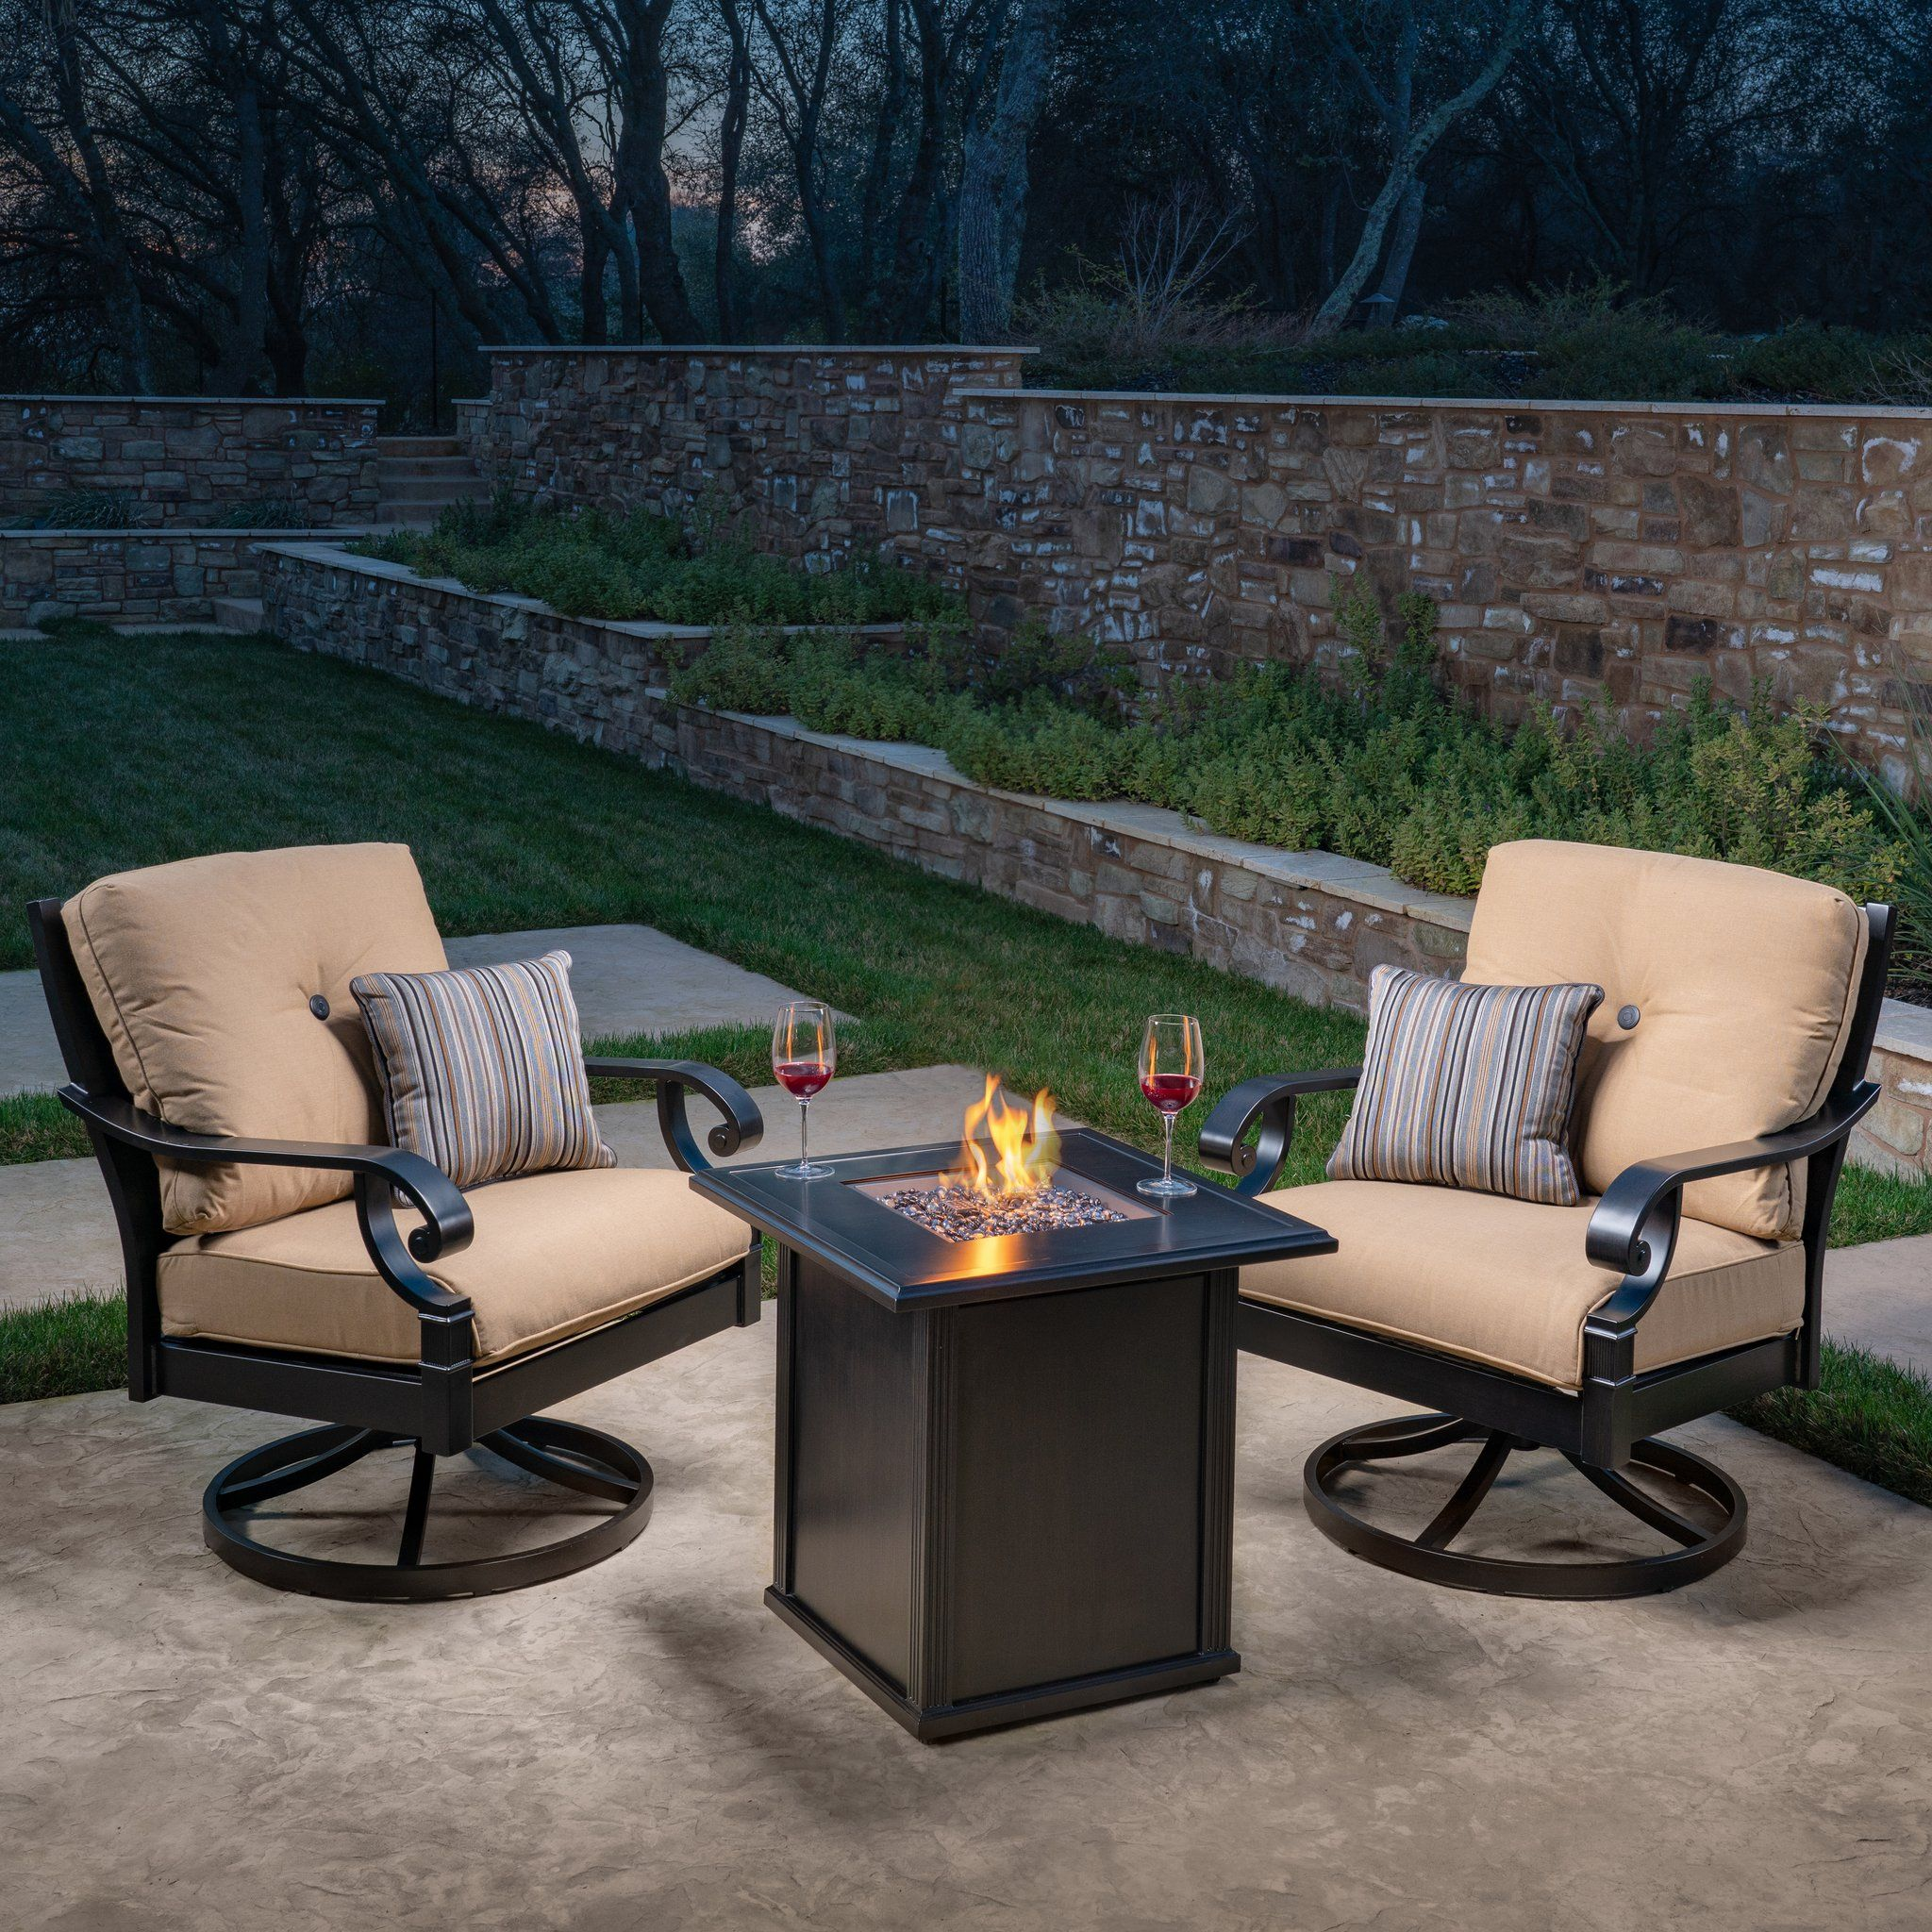 Verena 3 Piece Fire Chat Set In 2020 Patio Furnishings Patio Outdoor Furniture Sets